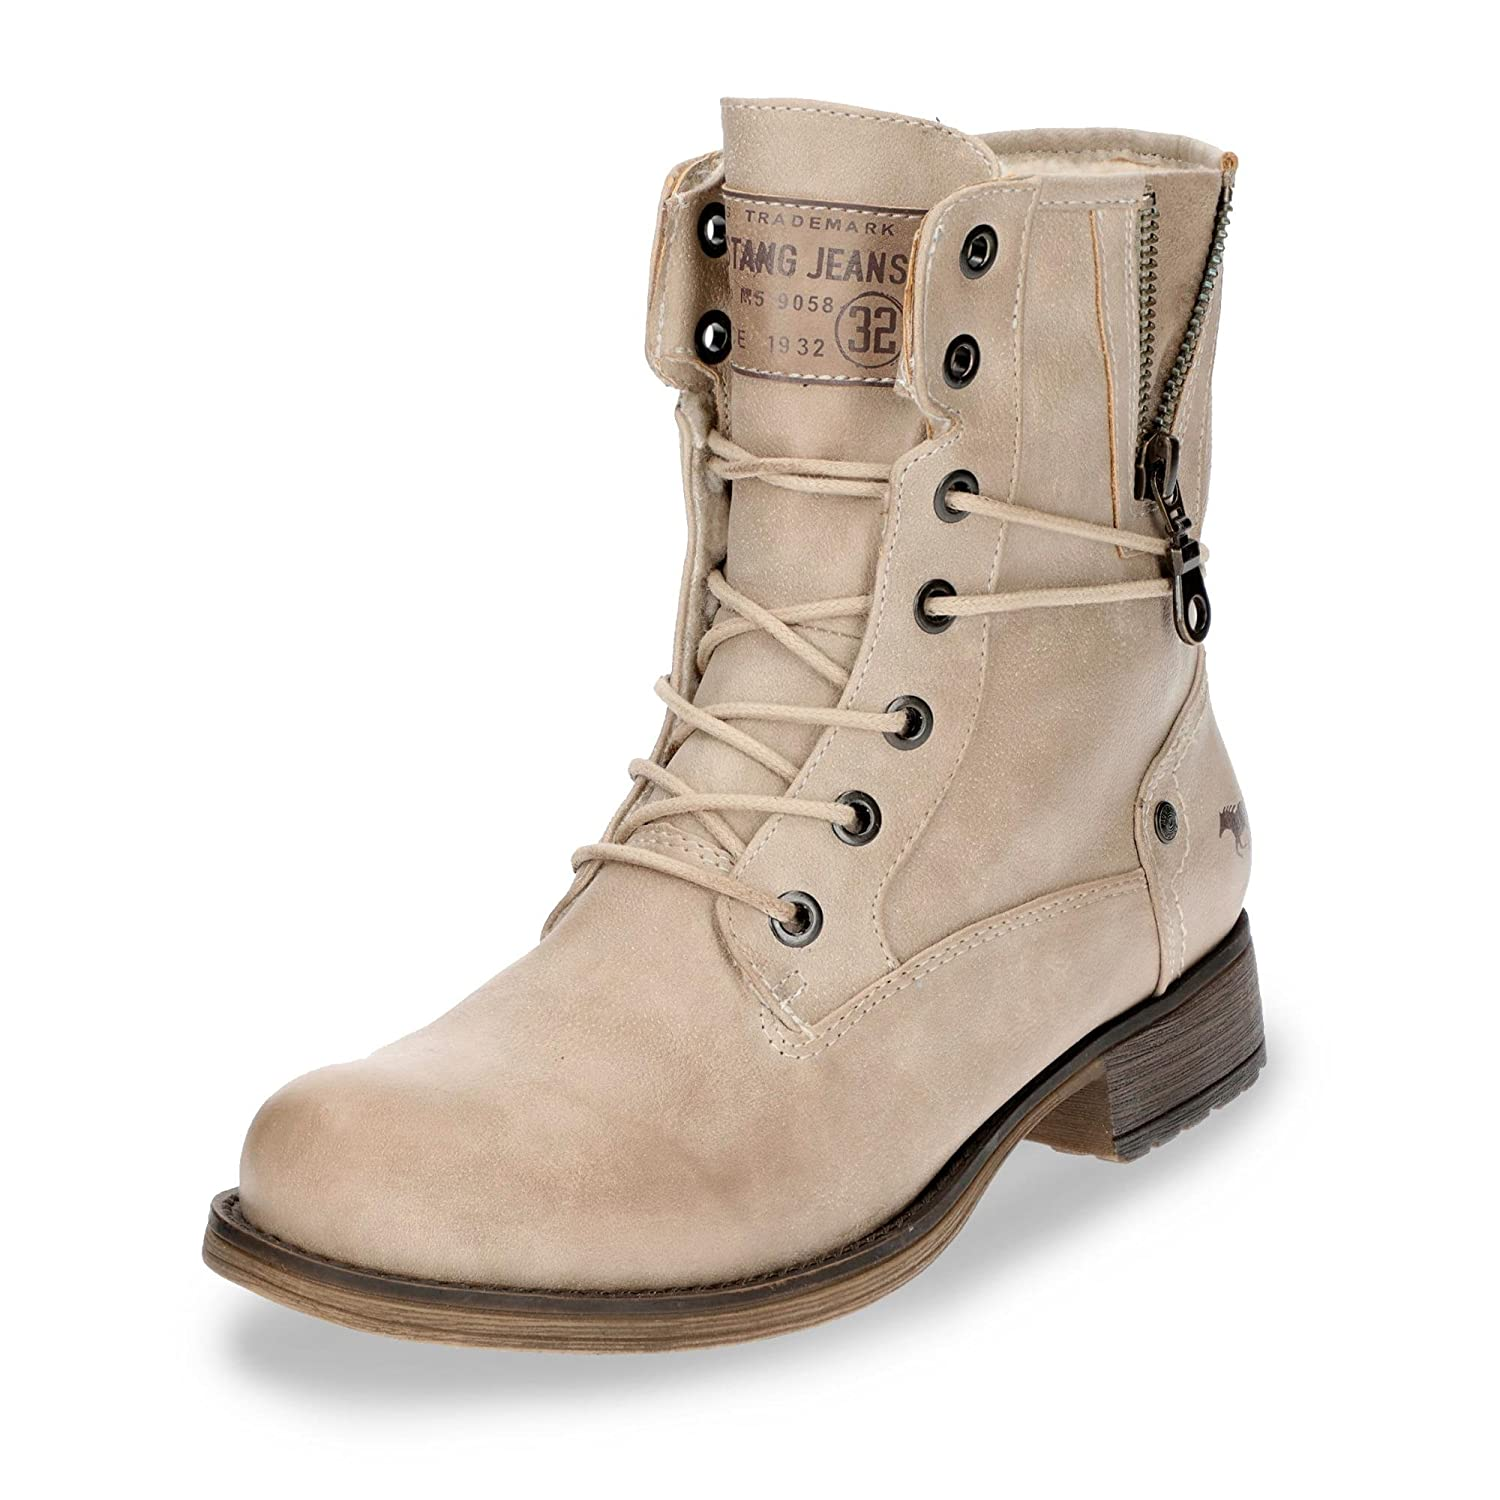 Mustang, Bottes Beige pour Femme 243) Beige (Ivory Mustang, 243) 9f5d66d - latesttechnology.space